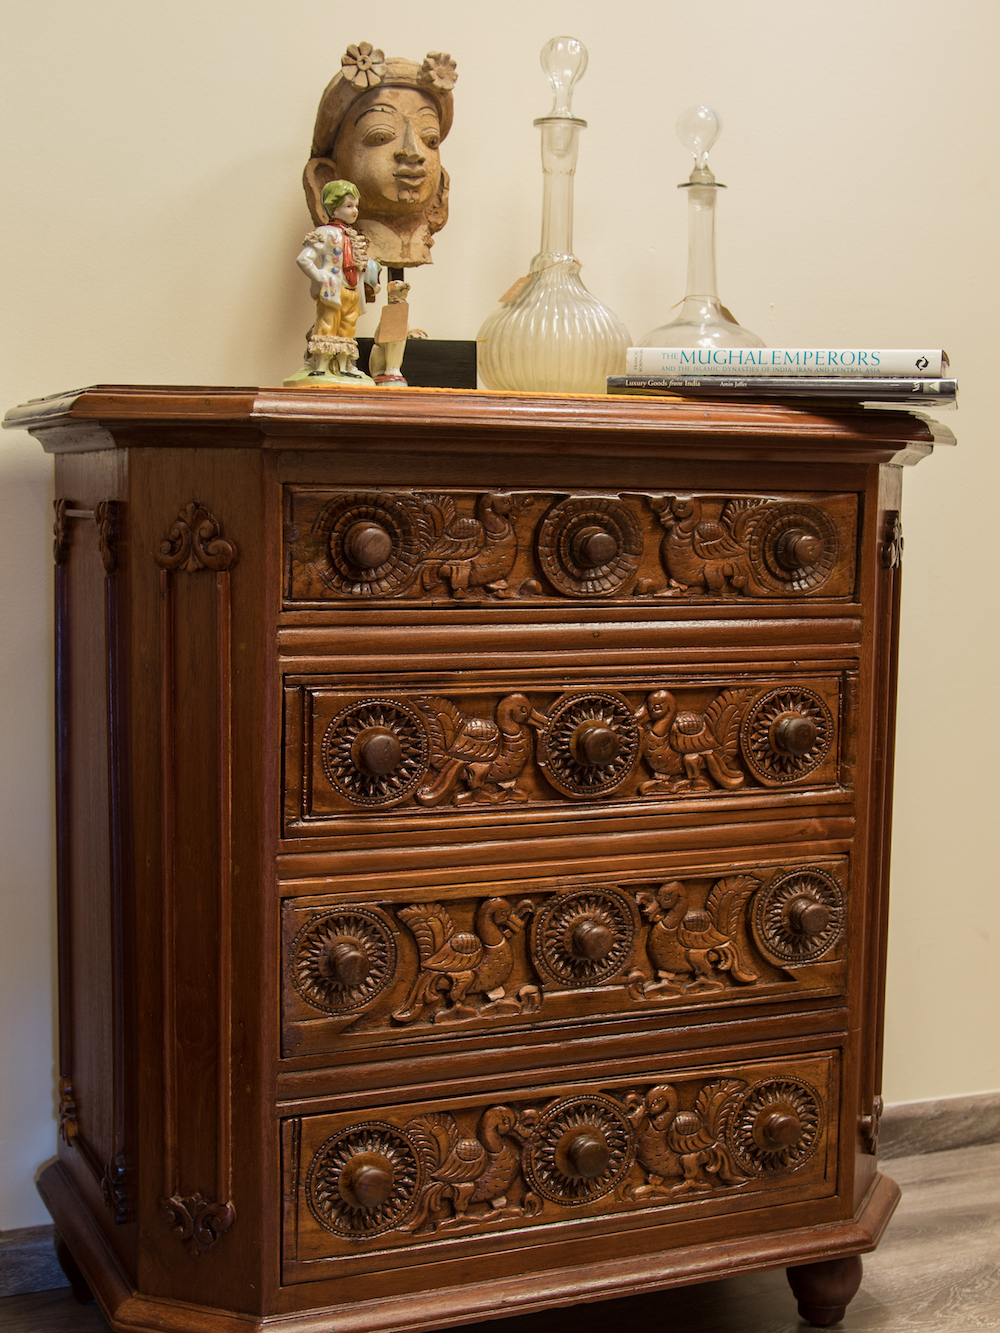 Ethnic Teakwood Chest of Drawers.JPG